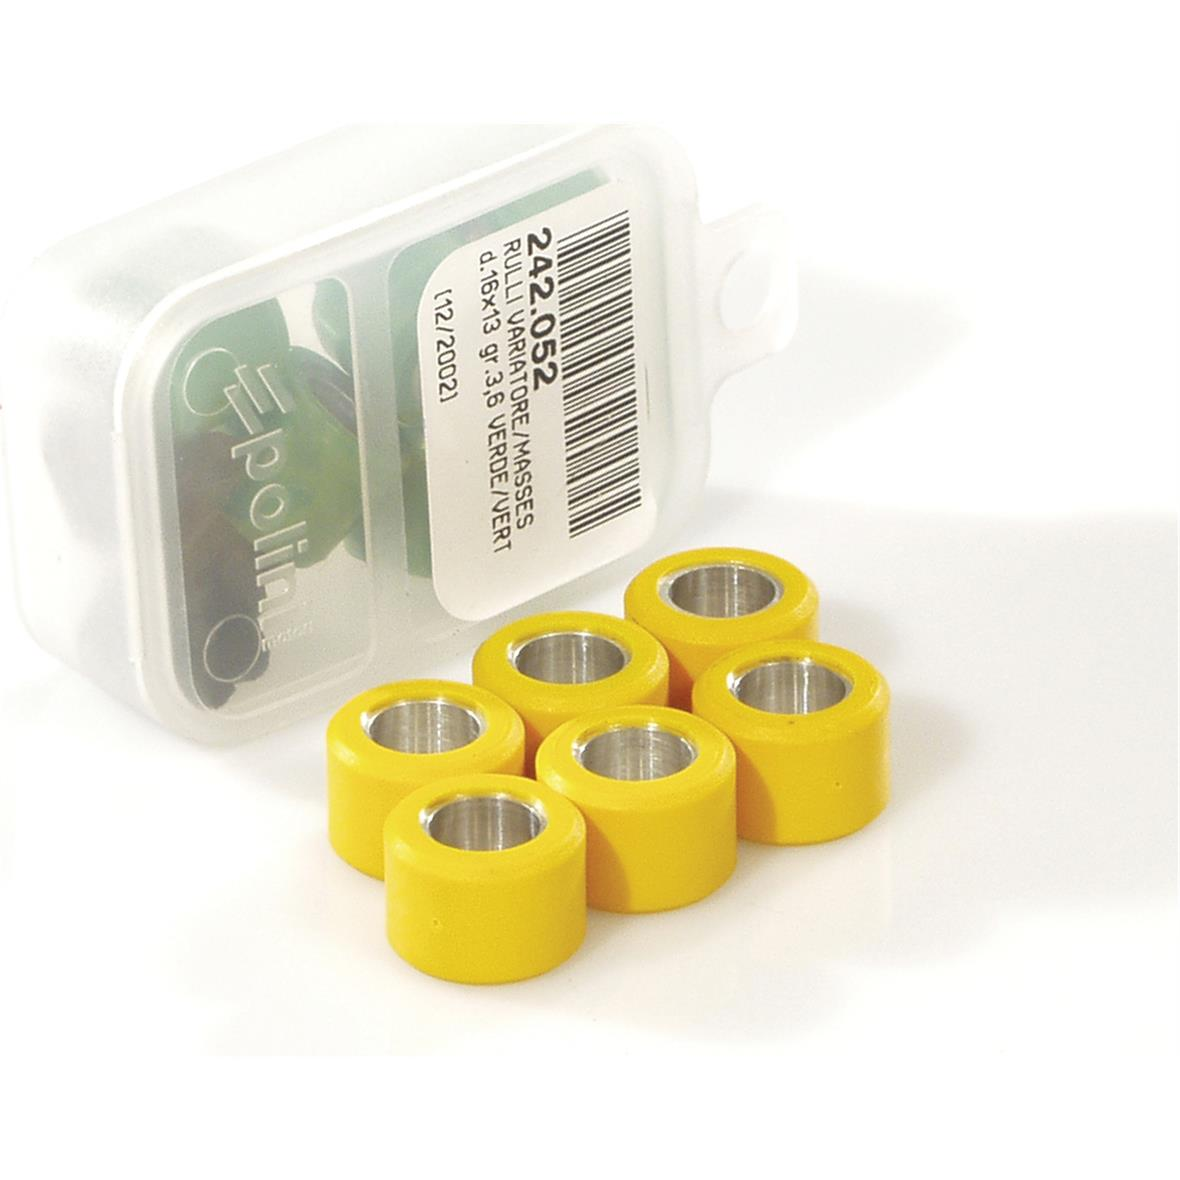 Product Image for 'Variator Rollers POLINI 17x12 mm 10,8gTitle'